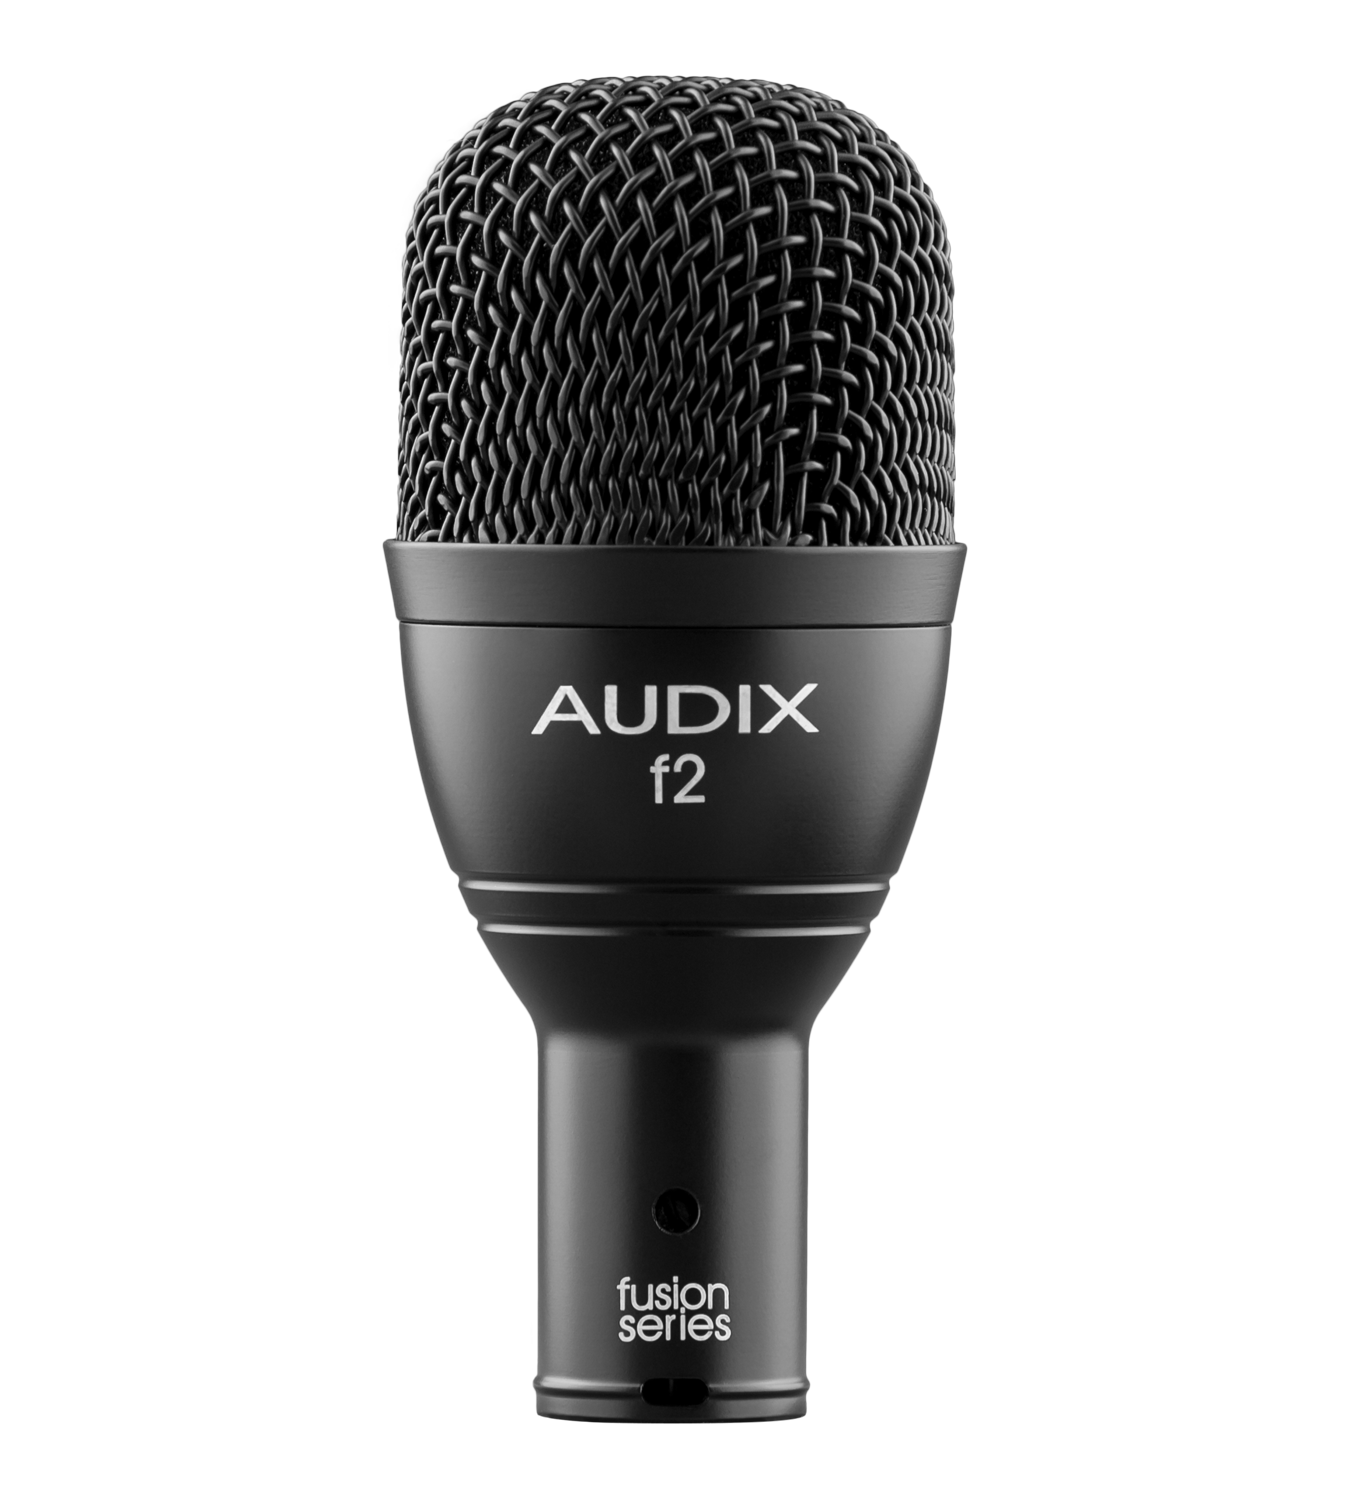 Audix f2 Instrument Mic